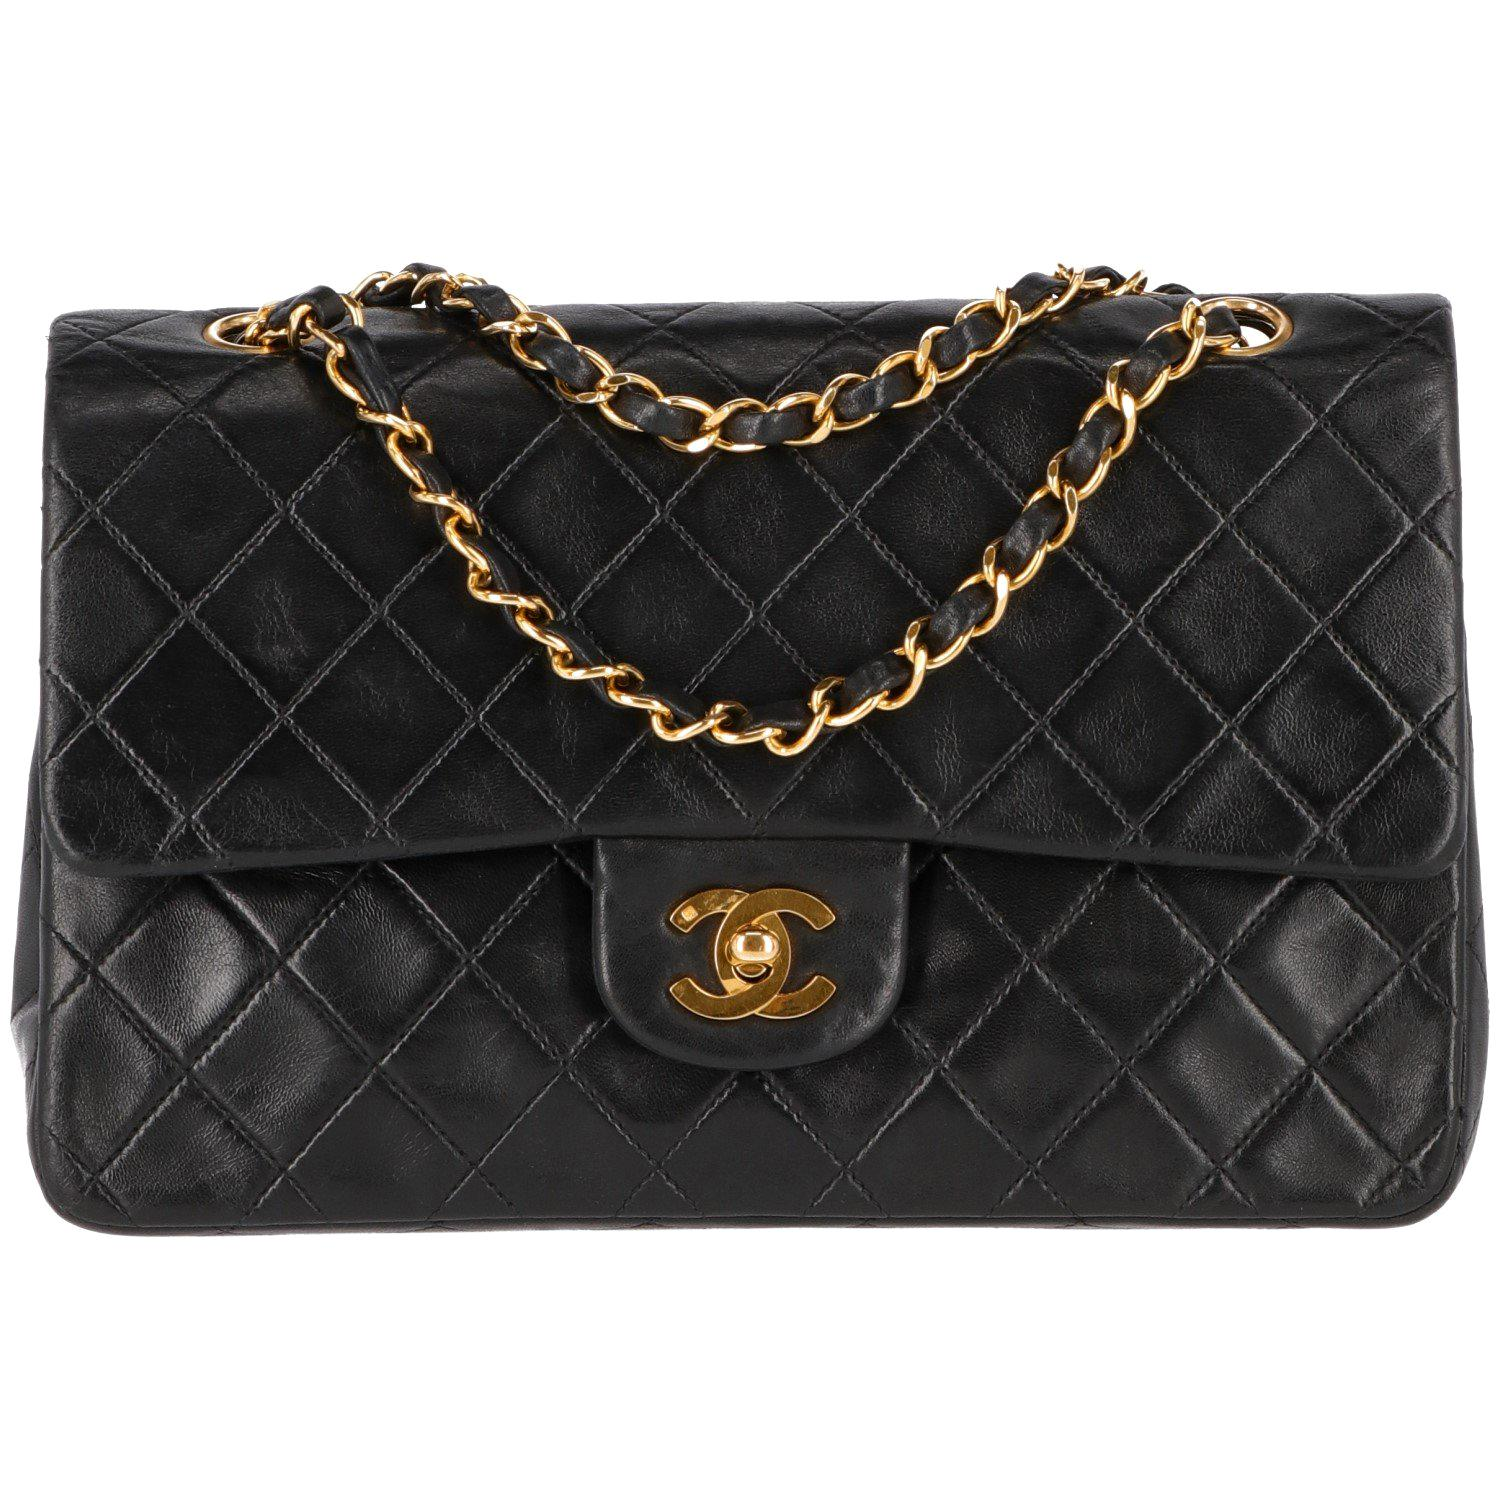 82a8d5825cfc Chanel 2.55 Bags - 127 For Sale on 1stdibs